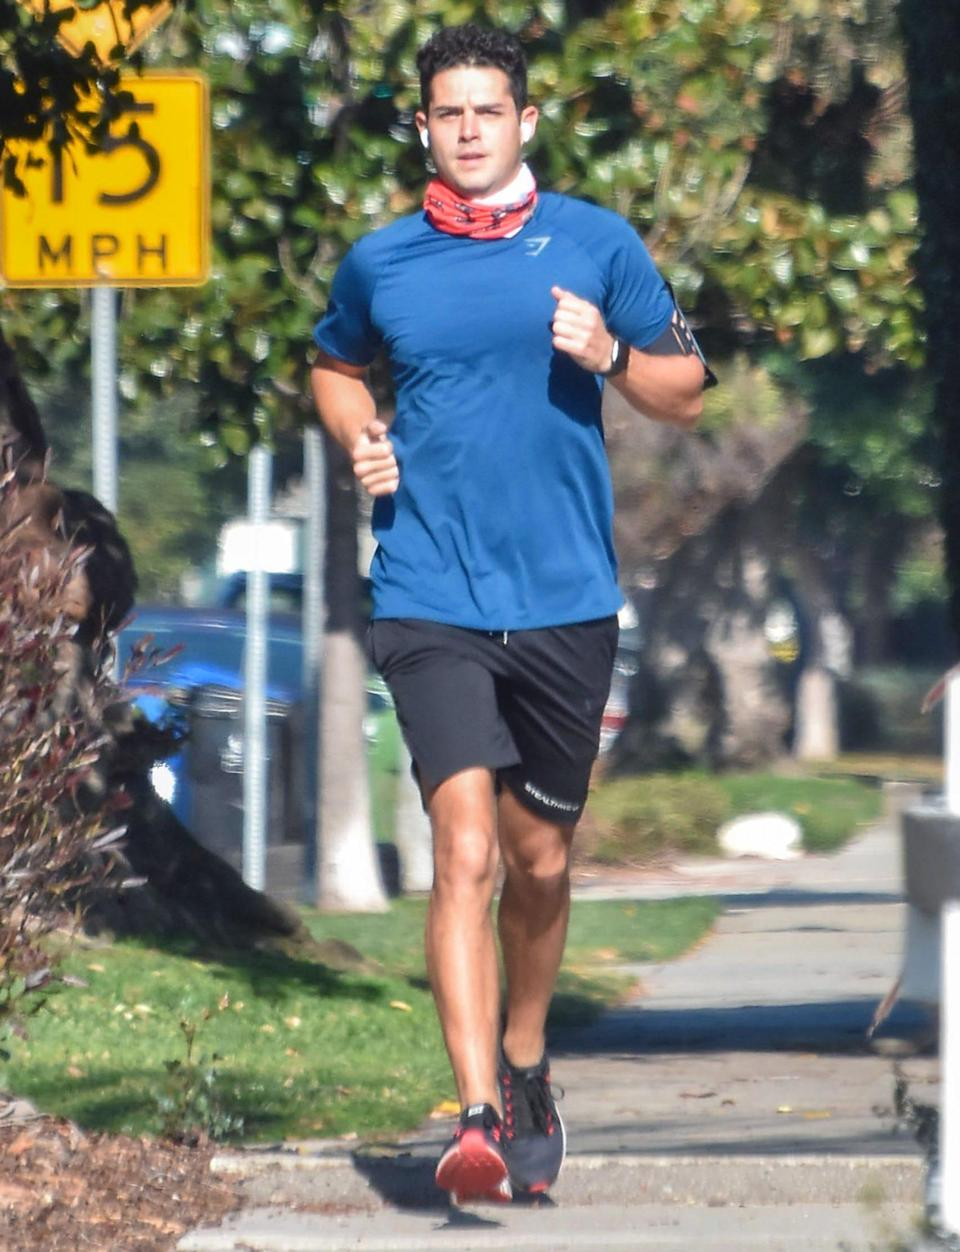 <p>Wells Adams goes for a jog, wearing a blue tee, shorts and sneakers, on Monday in L.A.</p>